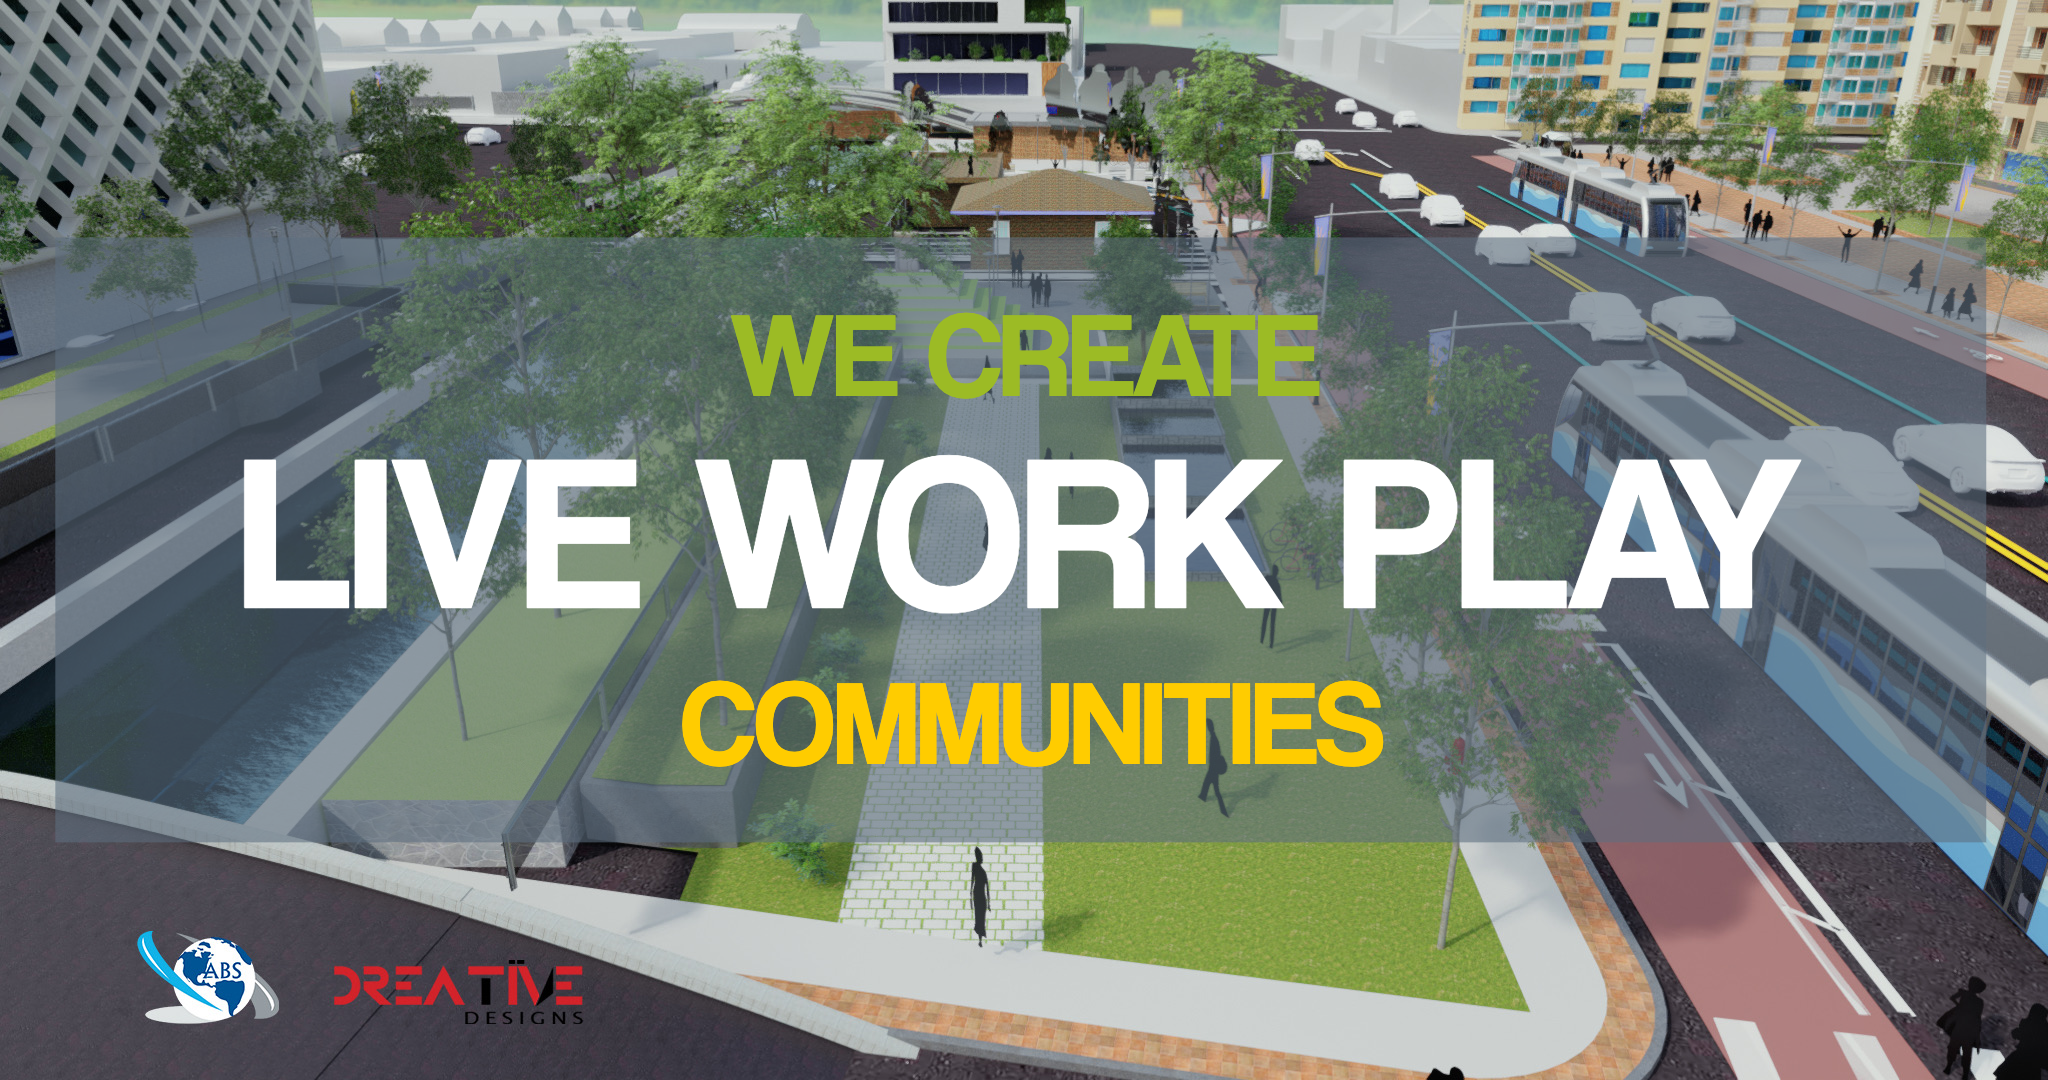 We Create LIVE WORK PLAY Communities Advanced Business Solutions